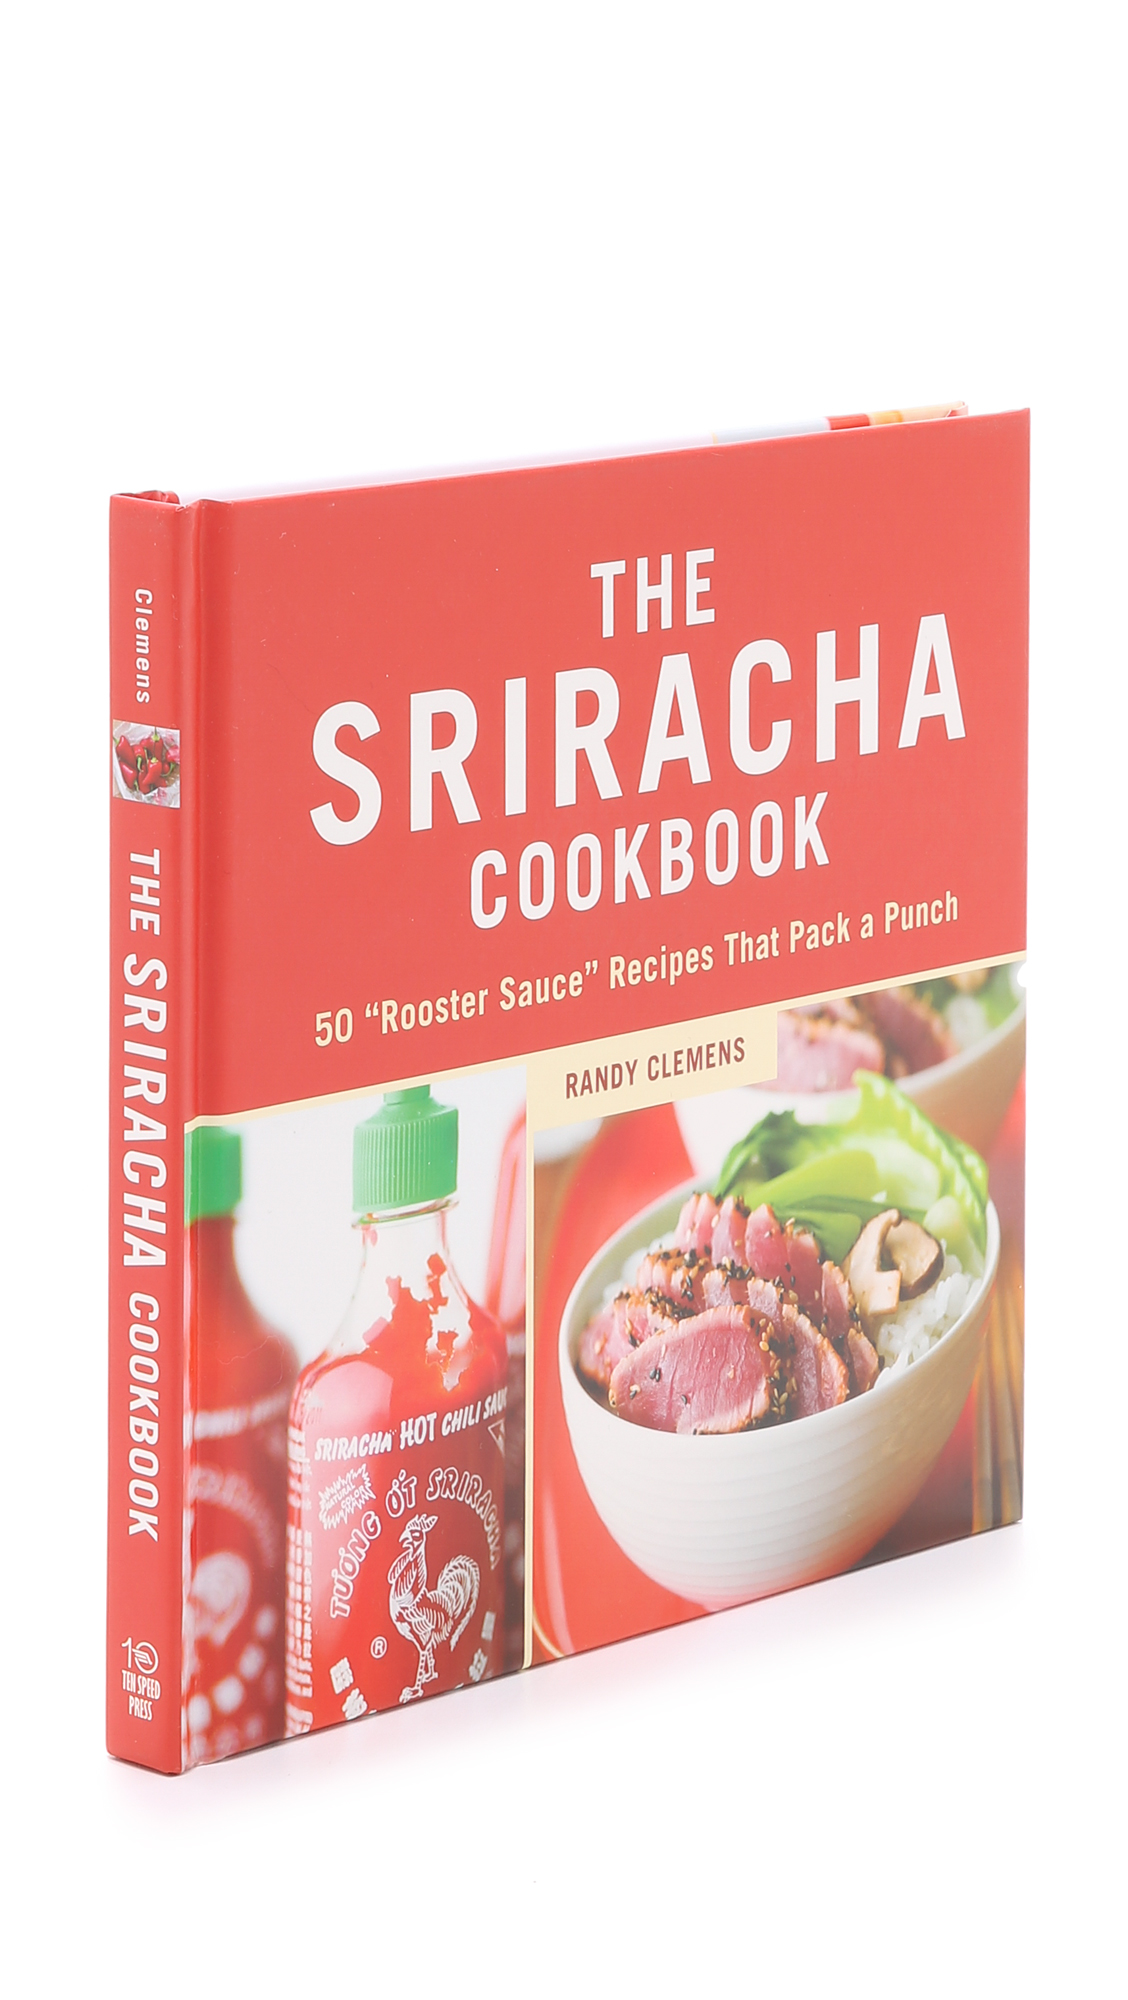 Books with Style The Sriracha Cookbook - No Color